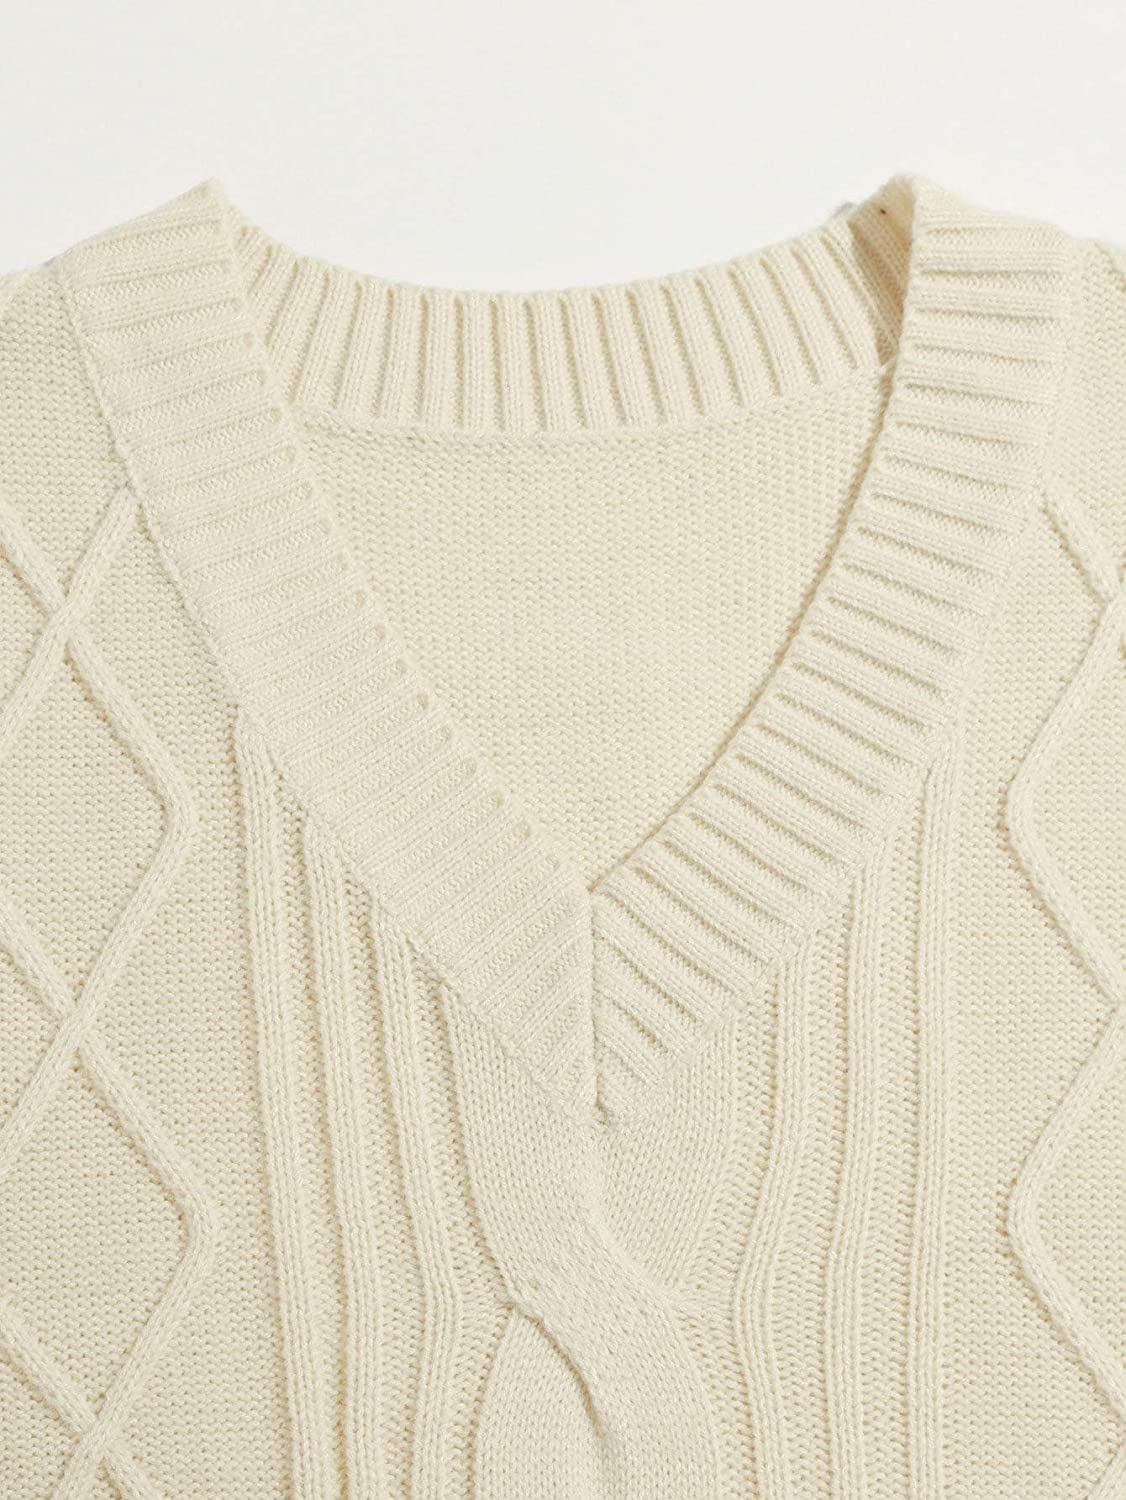 MakeMeChic Women's Preppy V Neck High Low Cable Knit Sweater Vest Sleeveless Top